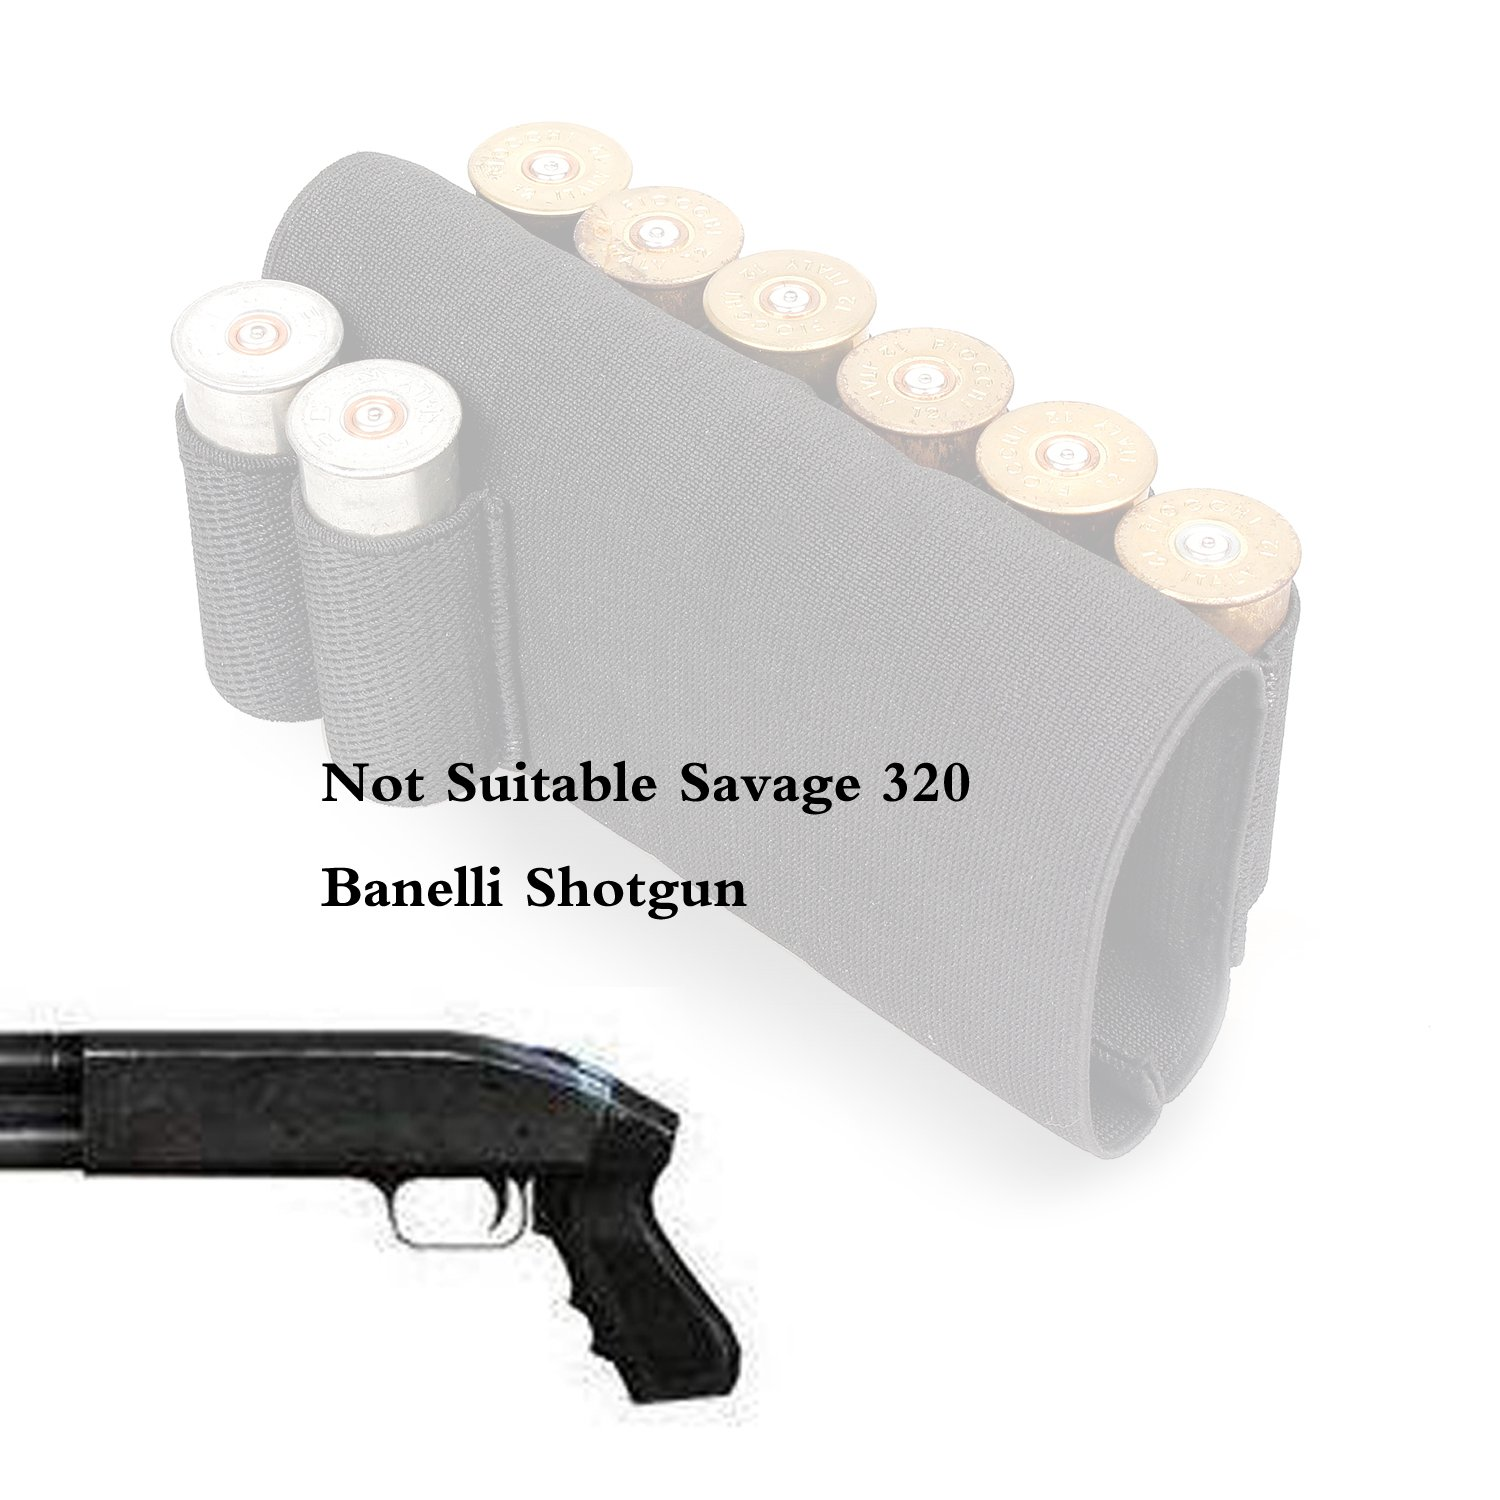 Buttstock Rifle Stock Shotgun Shell Cartridge Holder Remington870partsdiagram The Butt Plate Rests Against Shooters Cheek Rest Ammo Bullet Tactical Adjustable Remington 870 Savage